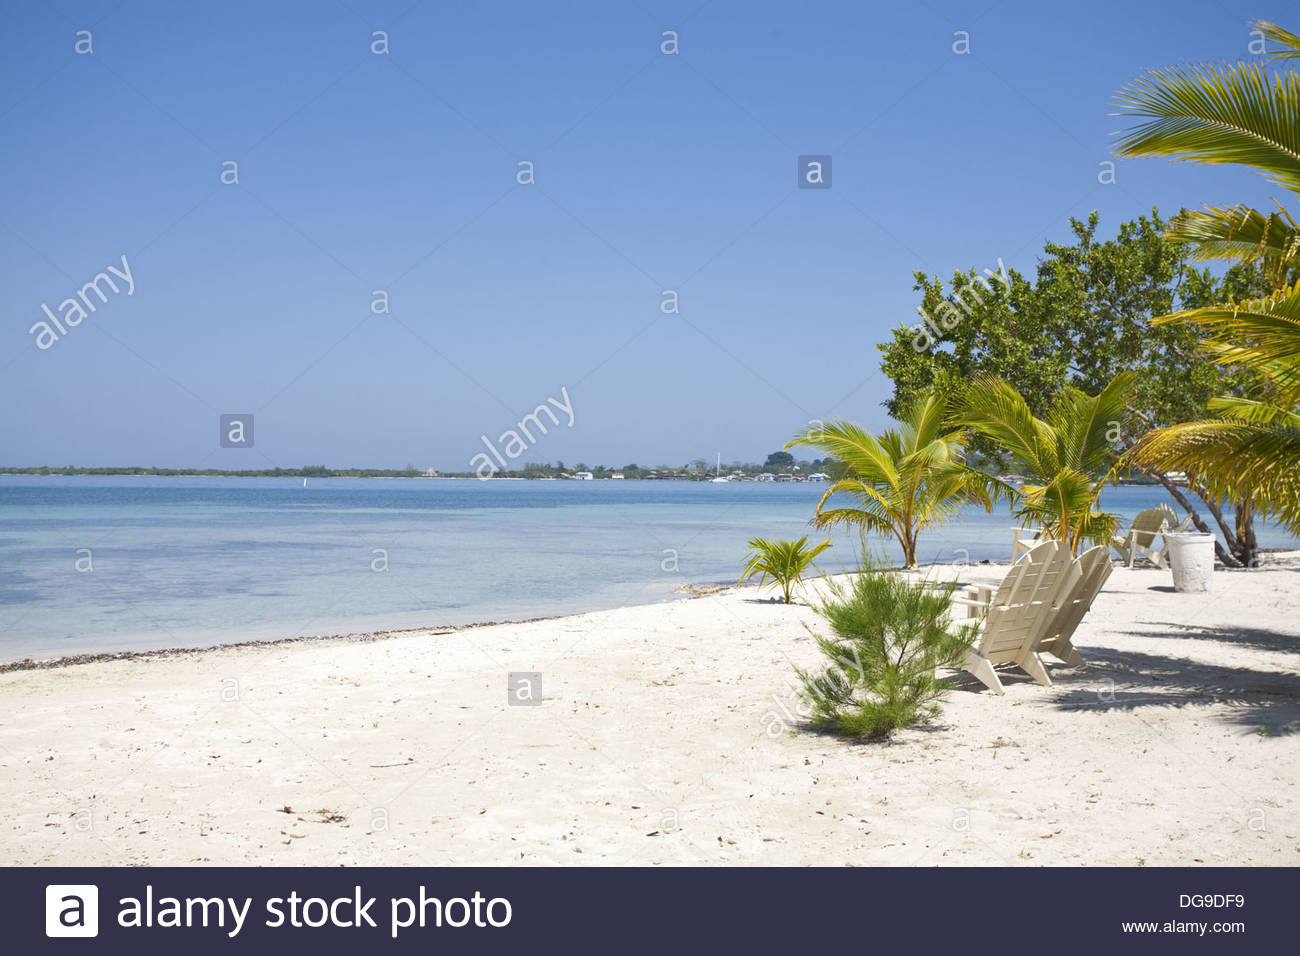 Bando Beach Utila, Bando Beach, Utila, Bay Islands, Honduras Stock Photo, Royalty ...